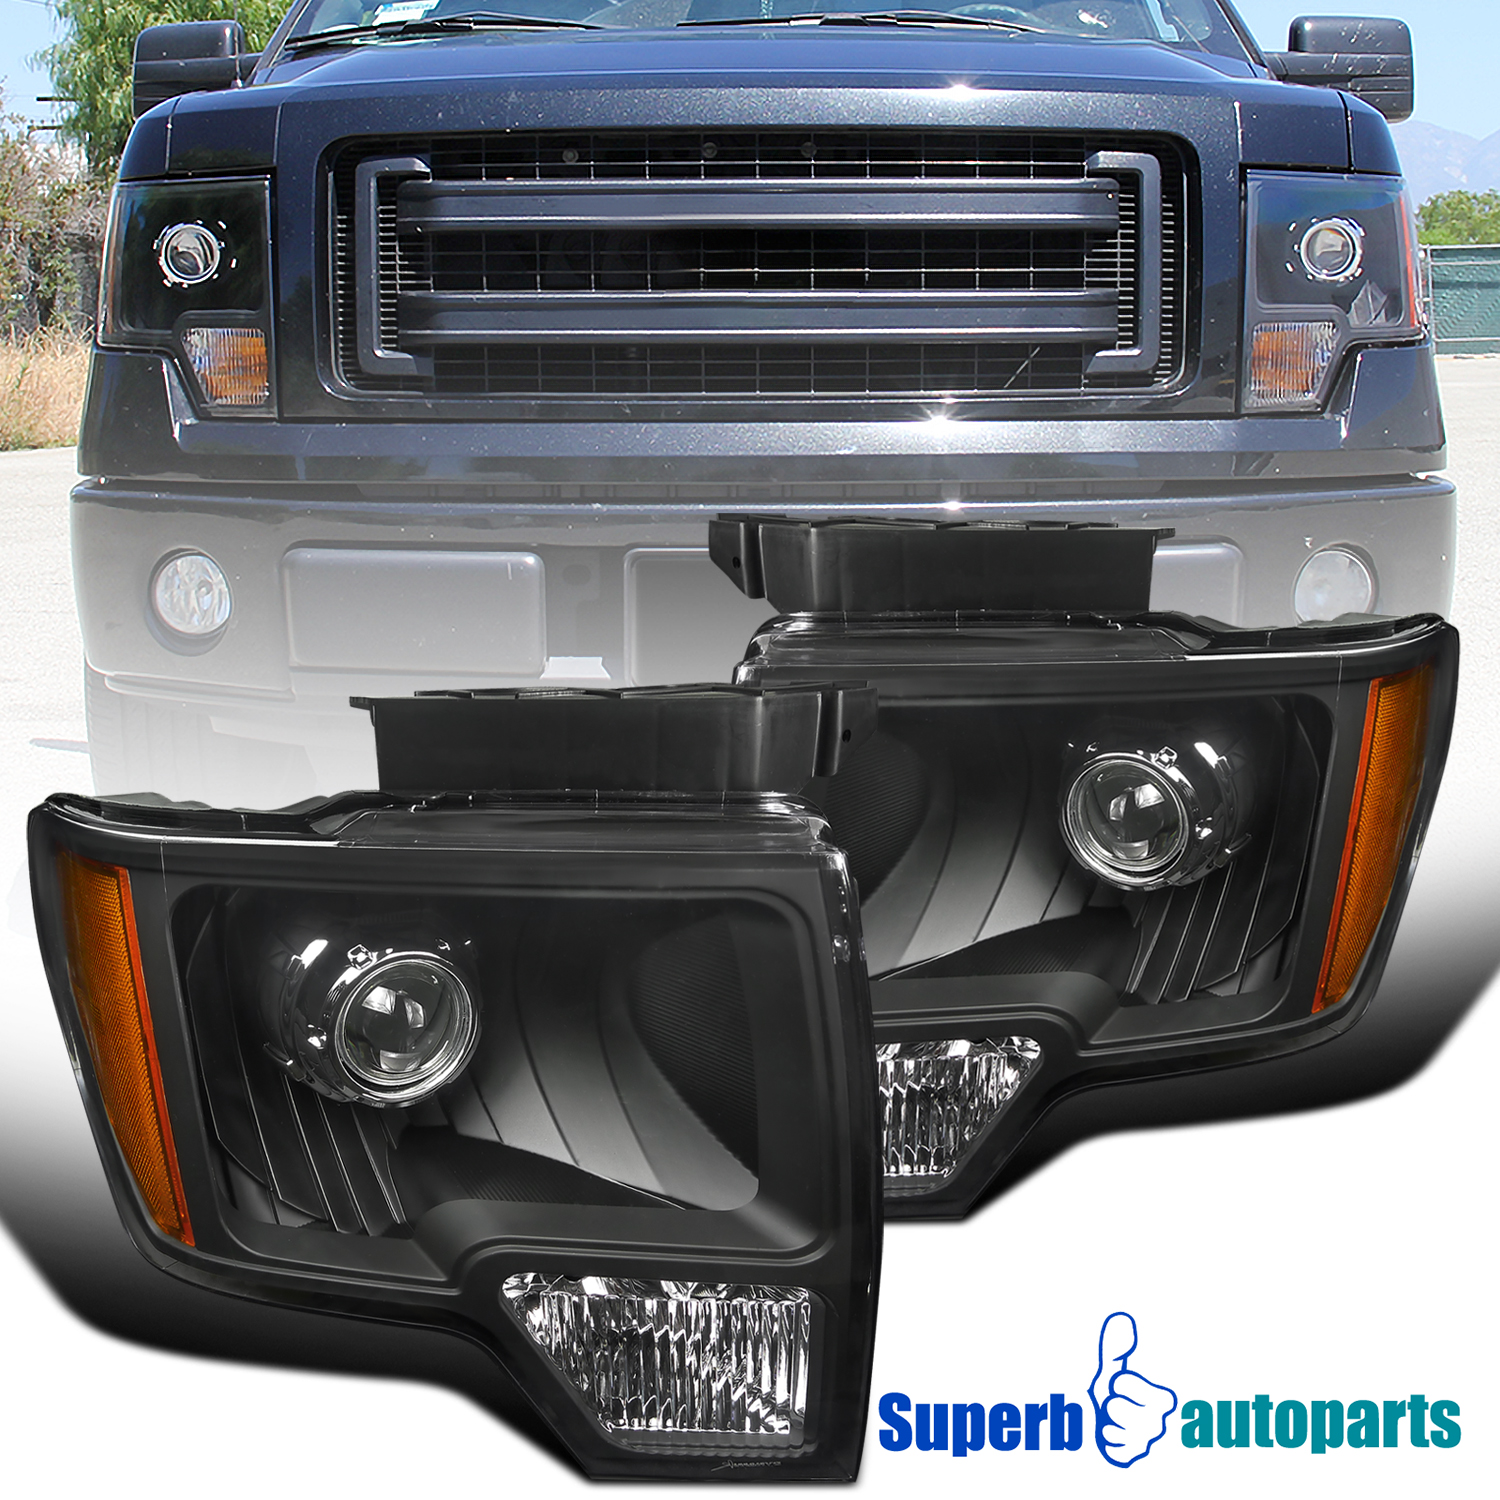 2014 F150 Headlights >> Details About For 2009 2014 Ford F150 Projector Headlights Head Lamps Black New Retro Style